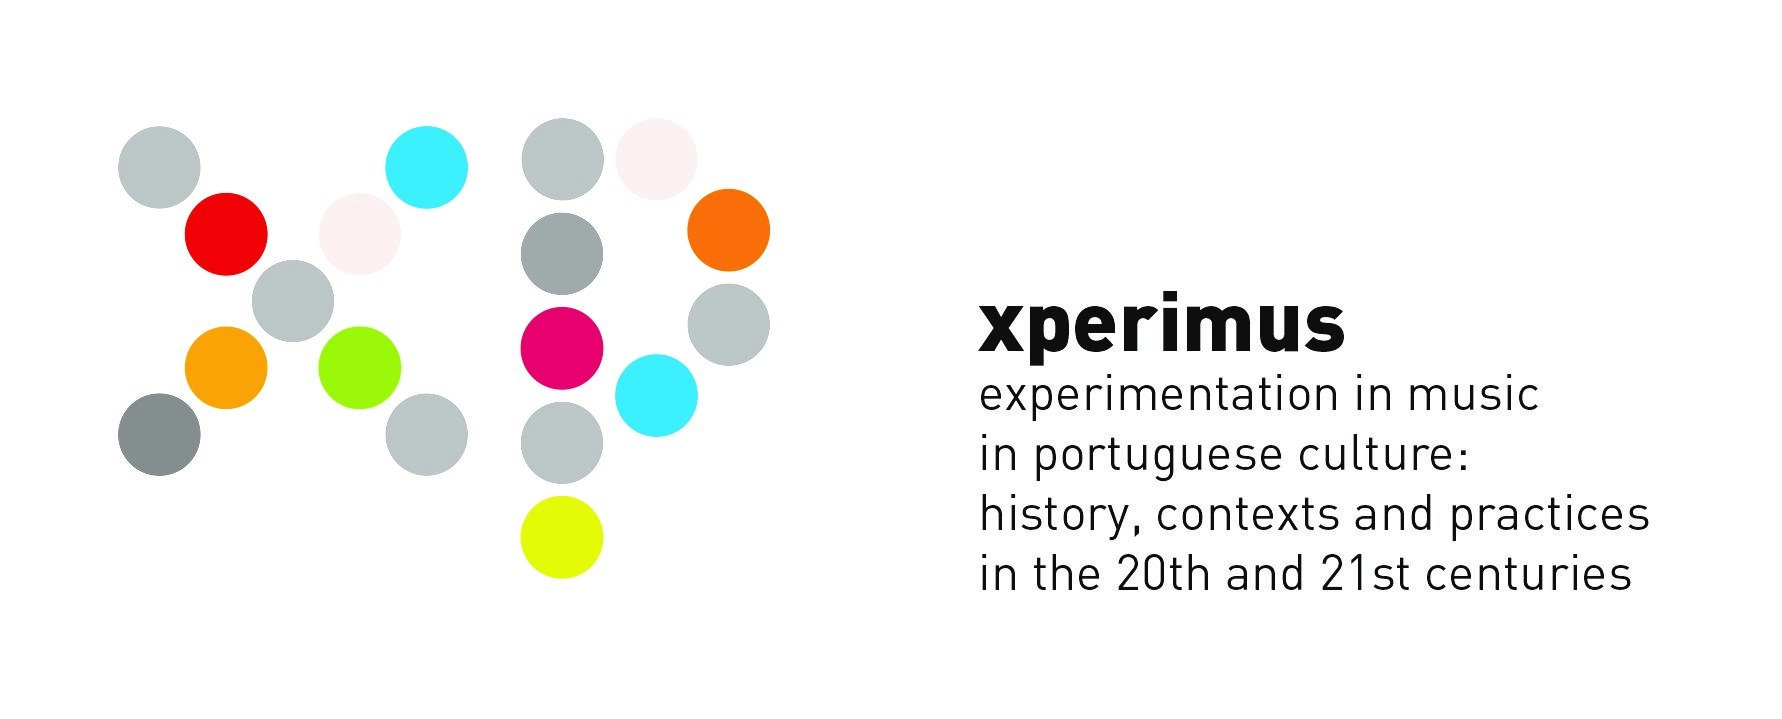 Xperimus: Experimentation in music in Portuguese culture: history, contexts and practices in the 20th and 21st centuries - Experimentation in music, both its concept and its practices, is frequently associated with musical and multidisciplinary creations from the mid-20th century by artists such as John Cage or Pierre Schaeffer. Recent projects and publications on the subject suggest a distinction between that historical context and its recent affordances, labelled as post-experimental. Operational definitions have been proposed, namely by Gilmore (2014), who associates the concept and its practices to intentional and methodological approaches diverging from mainstream paradigms, departing from concepts such as experimental systems (Rheinberger 1998; Schwab 2013) or epistemic complexity (Assis 2015).In the Portuguese cultural context, experimentation in music is an area scarcely studied, as most studies address specific composers or restricted contexts, but do not engage with the area as a potential continuum of practices. This project will thus focus on experimentation in music in the Portuguese context from the second half of the 20th century to the 21st century, in order to contribute to an integrated research outlook of its history, contexts and practices. This project will address three main paths of investigation, through the application of methods such as archival work, observational and participative fieldwork, and implementation of creative labs.